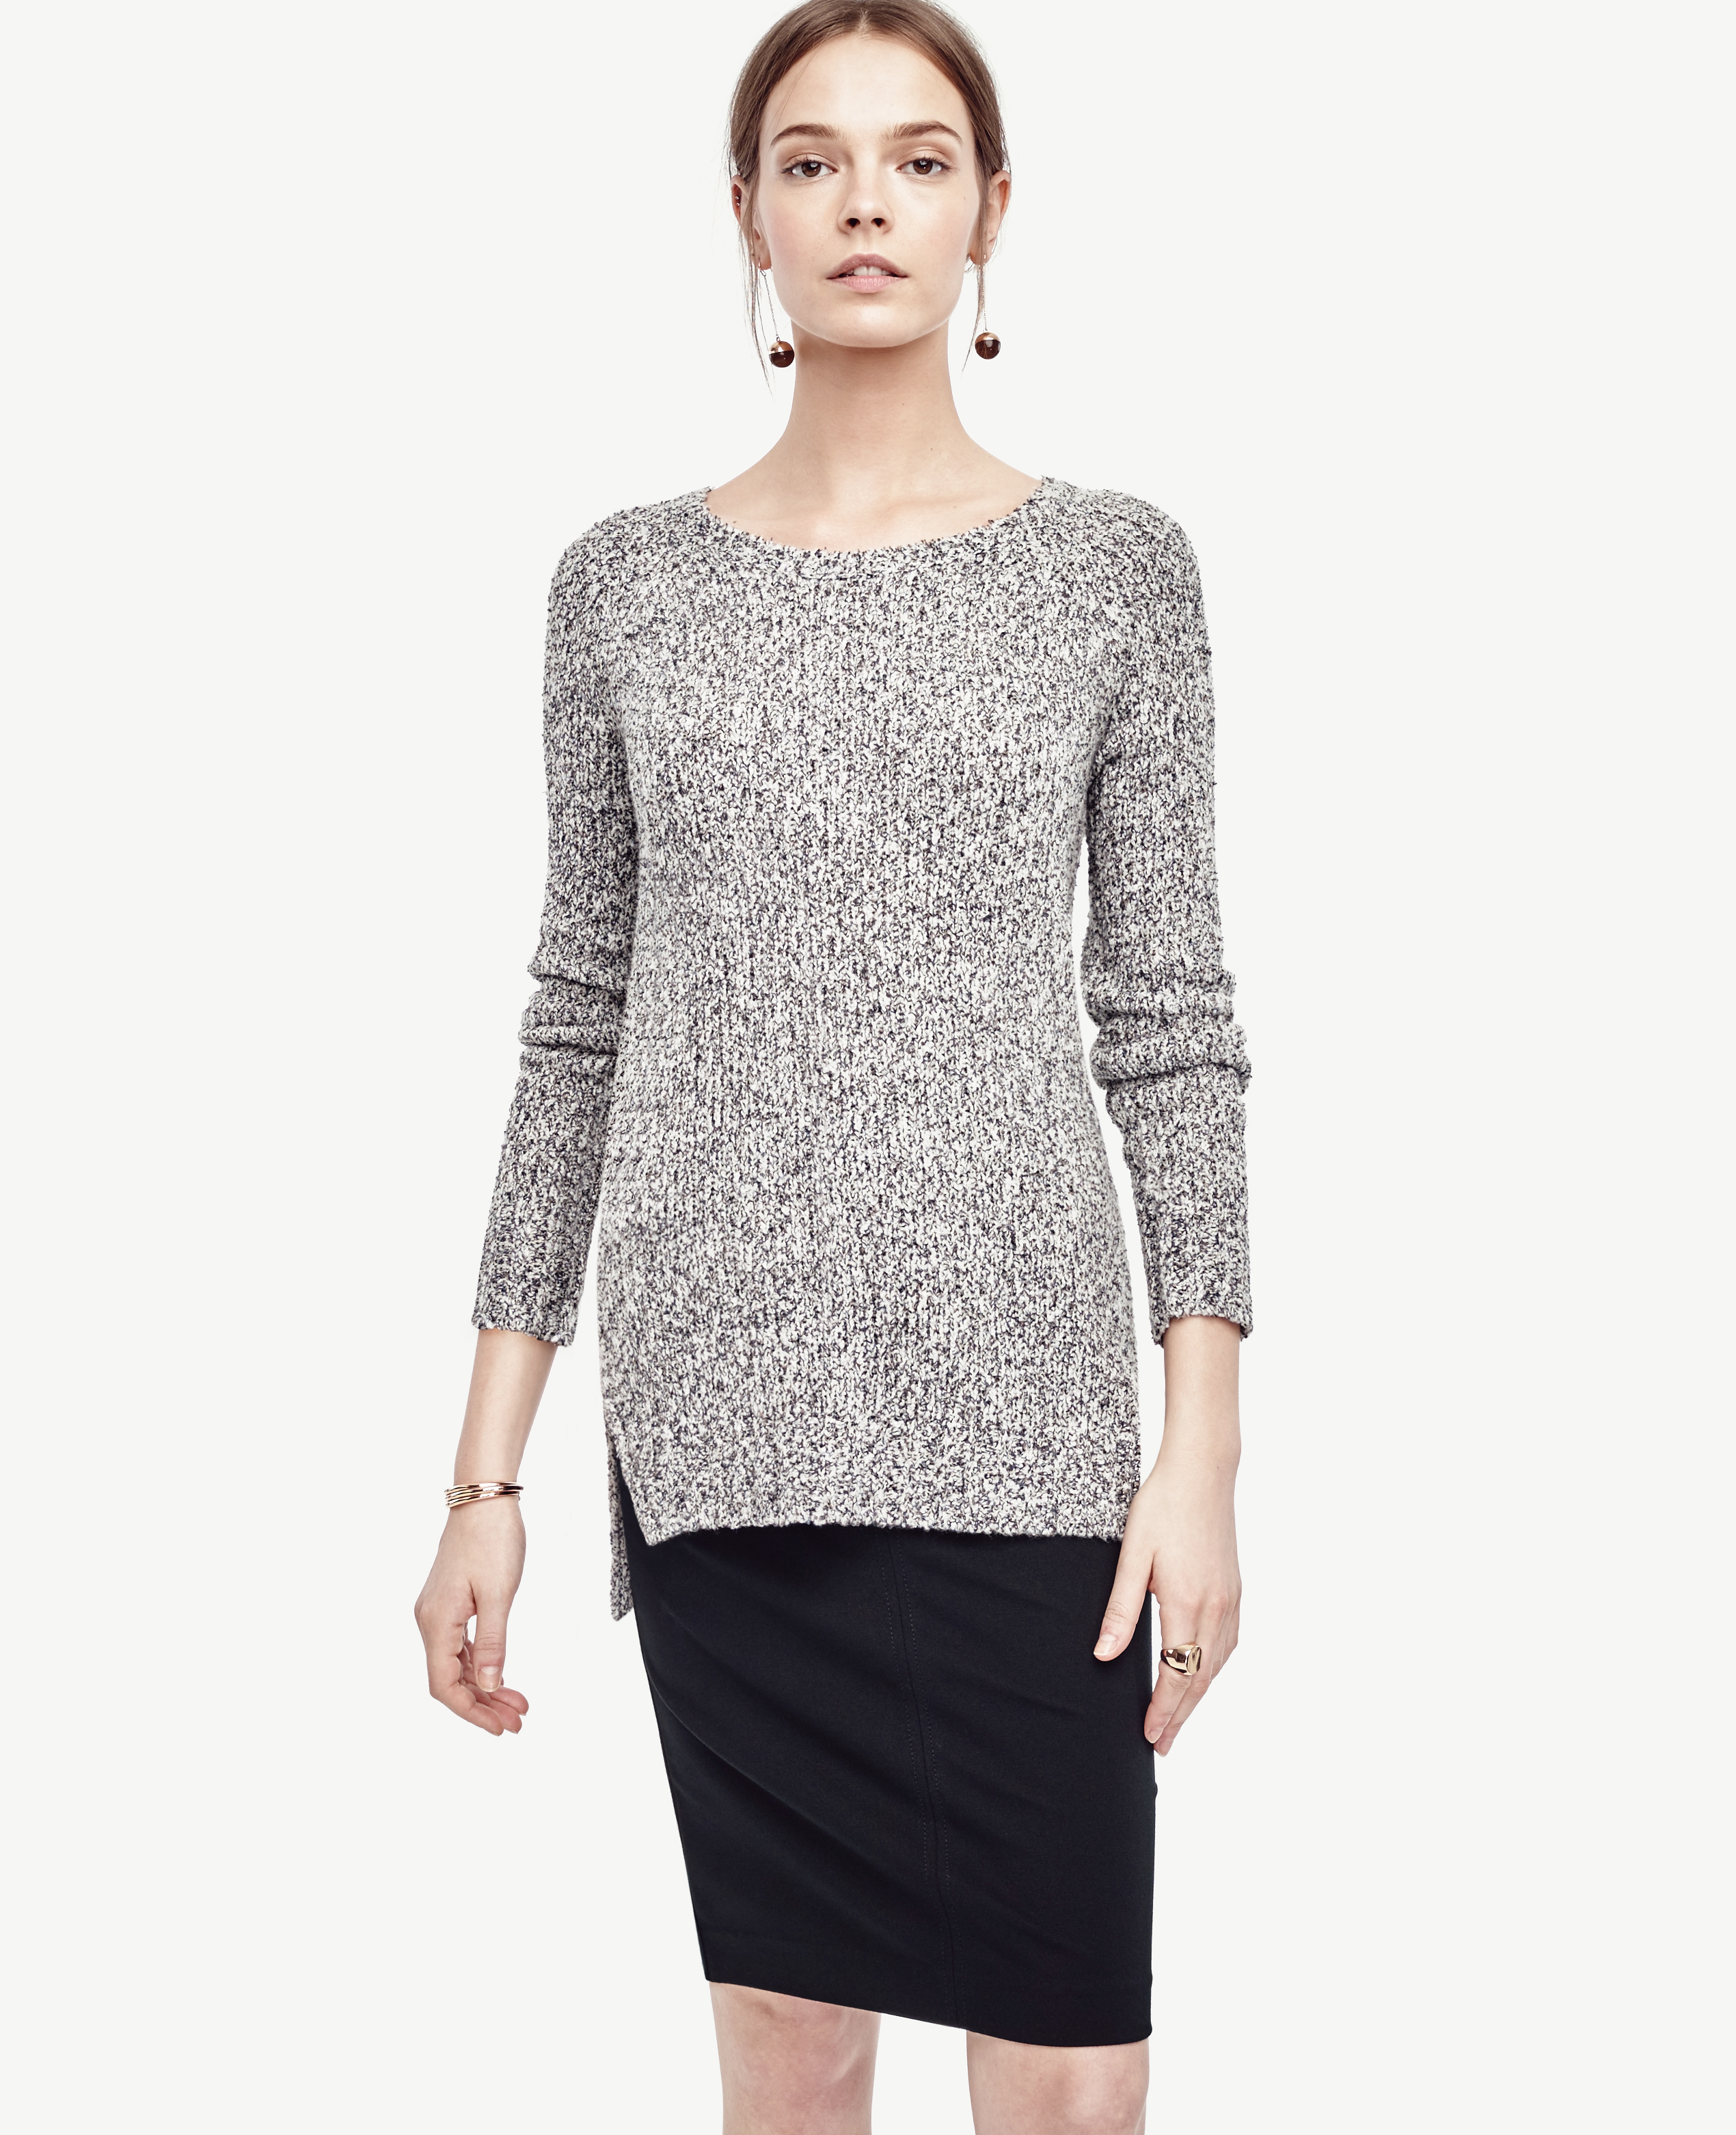 Ann taylor Marled Crew Neck Tunic Sweater in Gray | Lyst